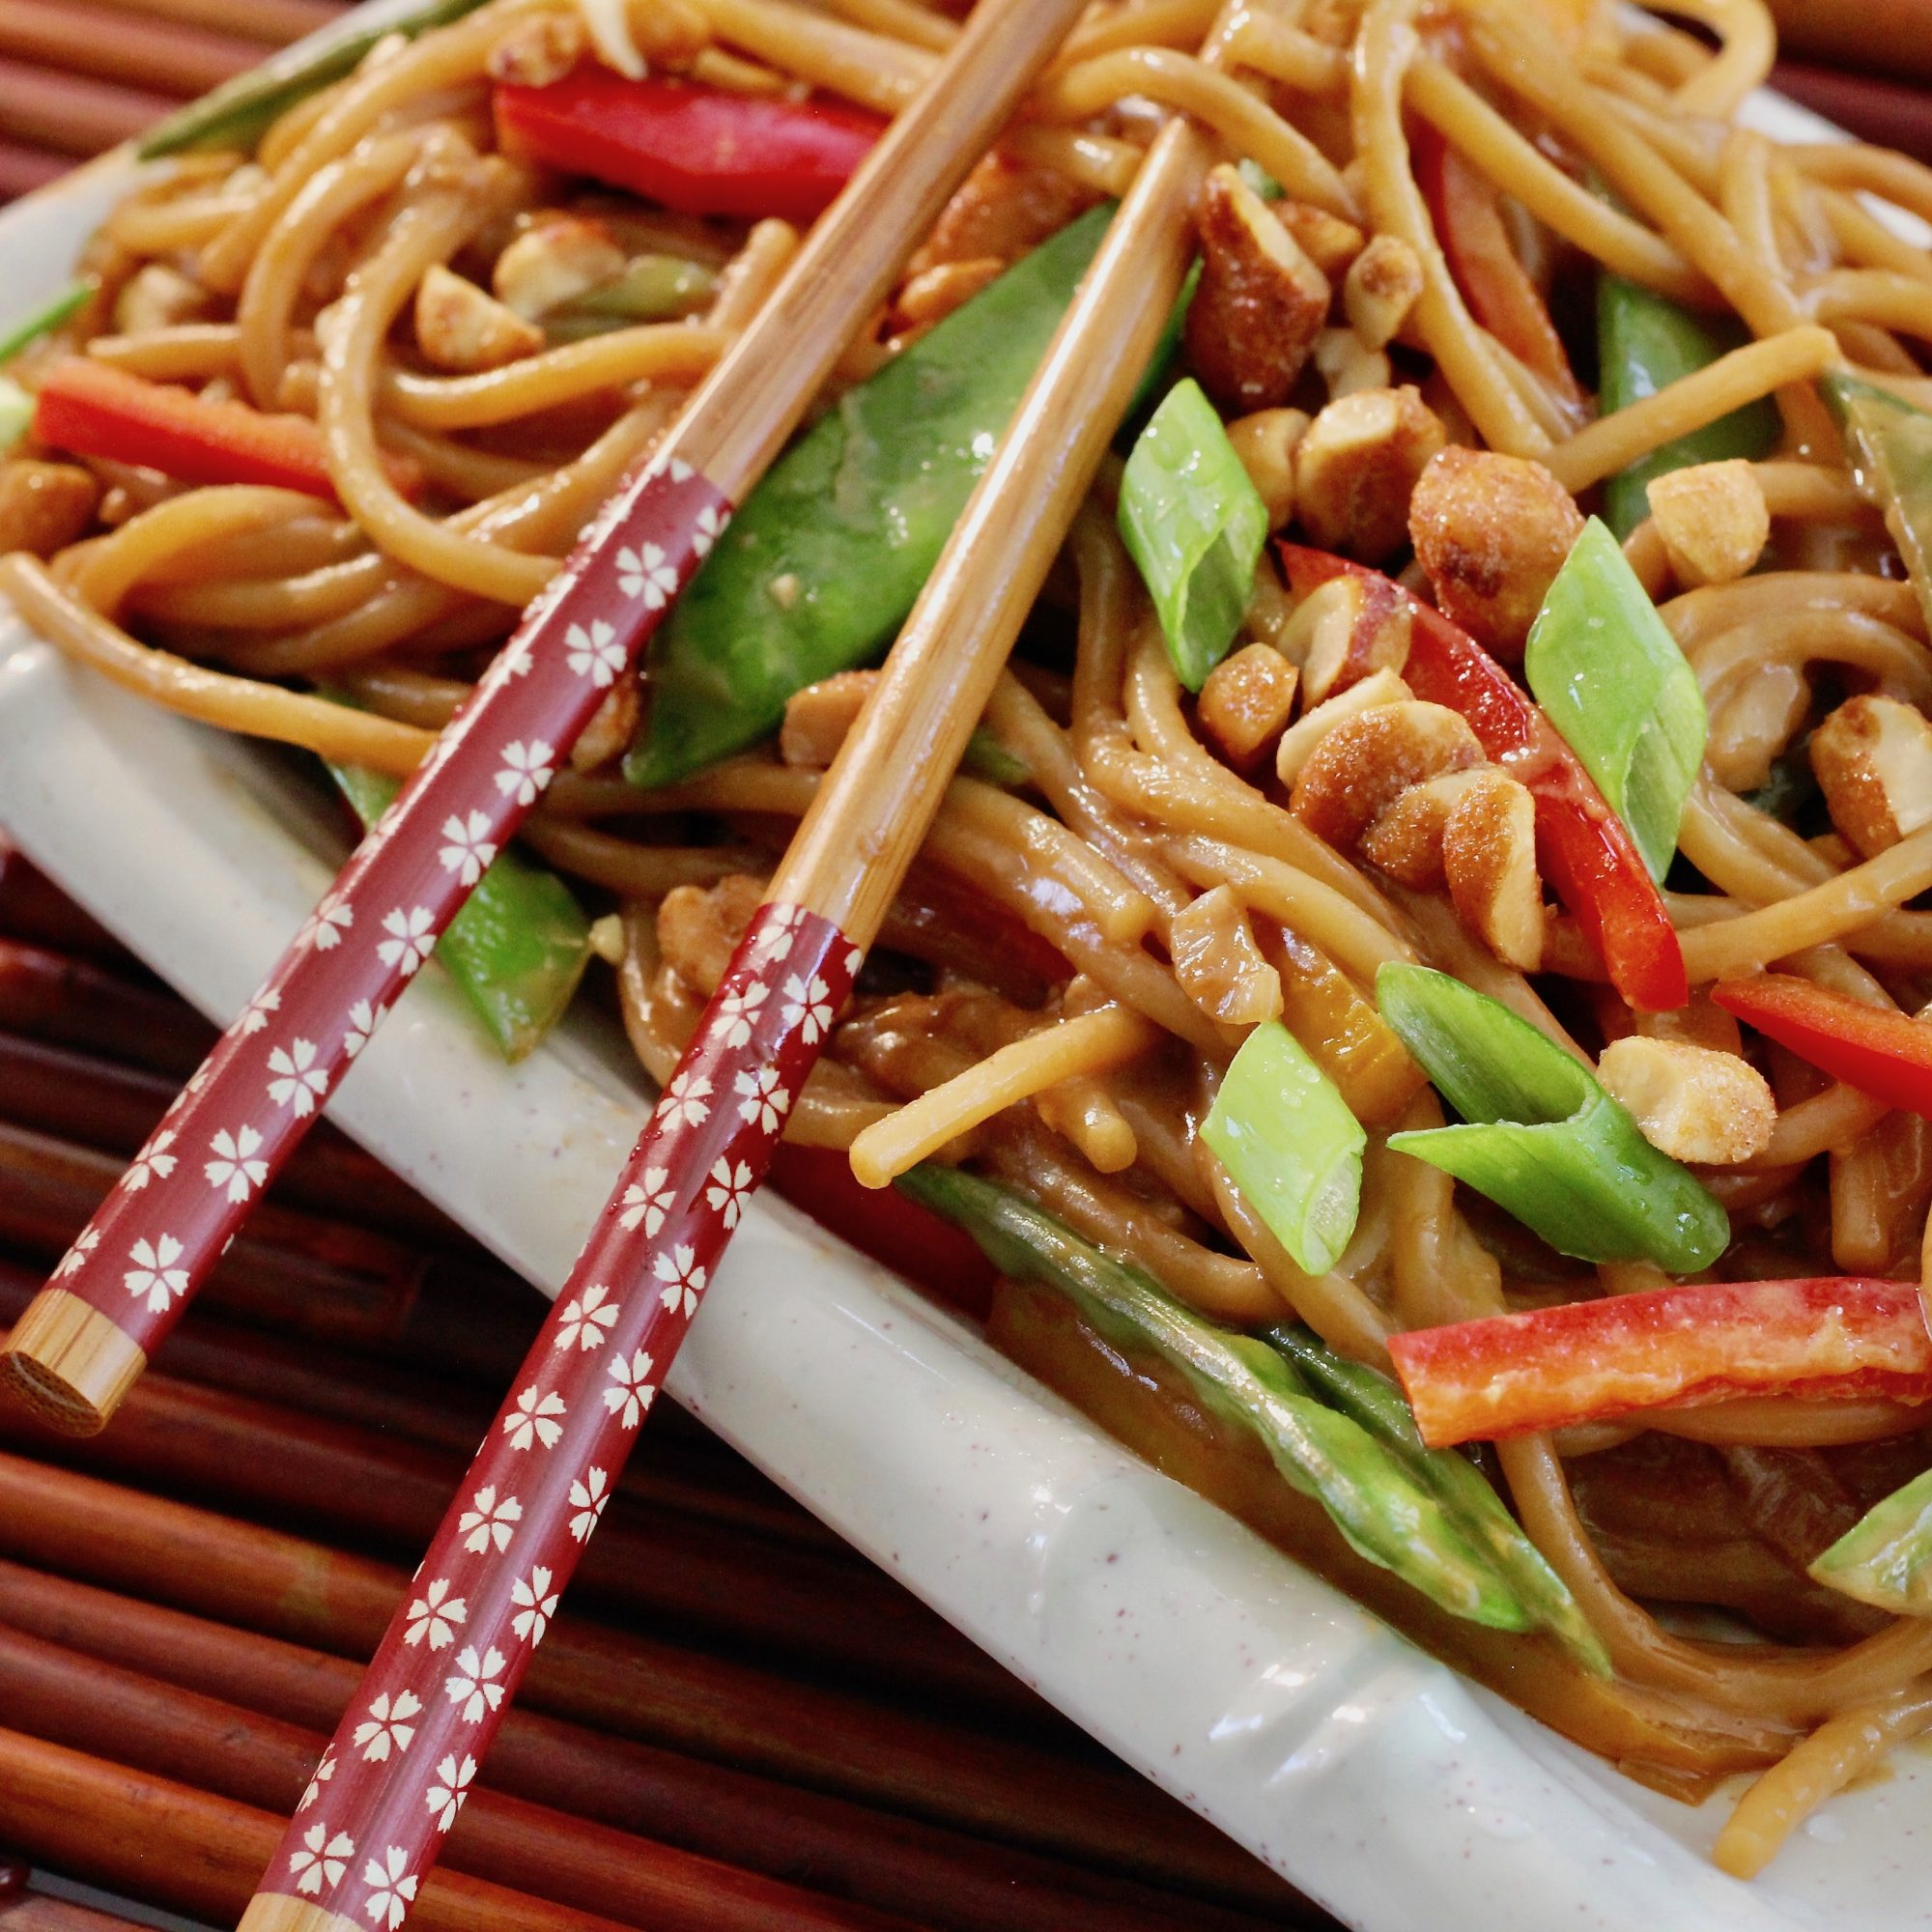 Peanut Noodles with bell peppers on a white plate with chopsticks